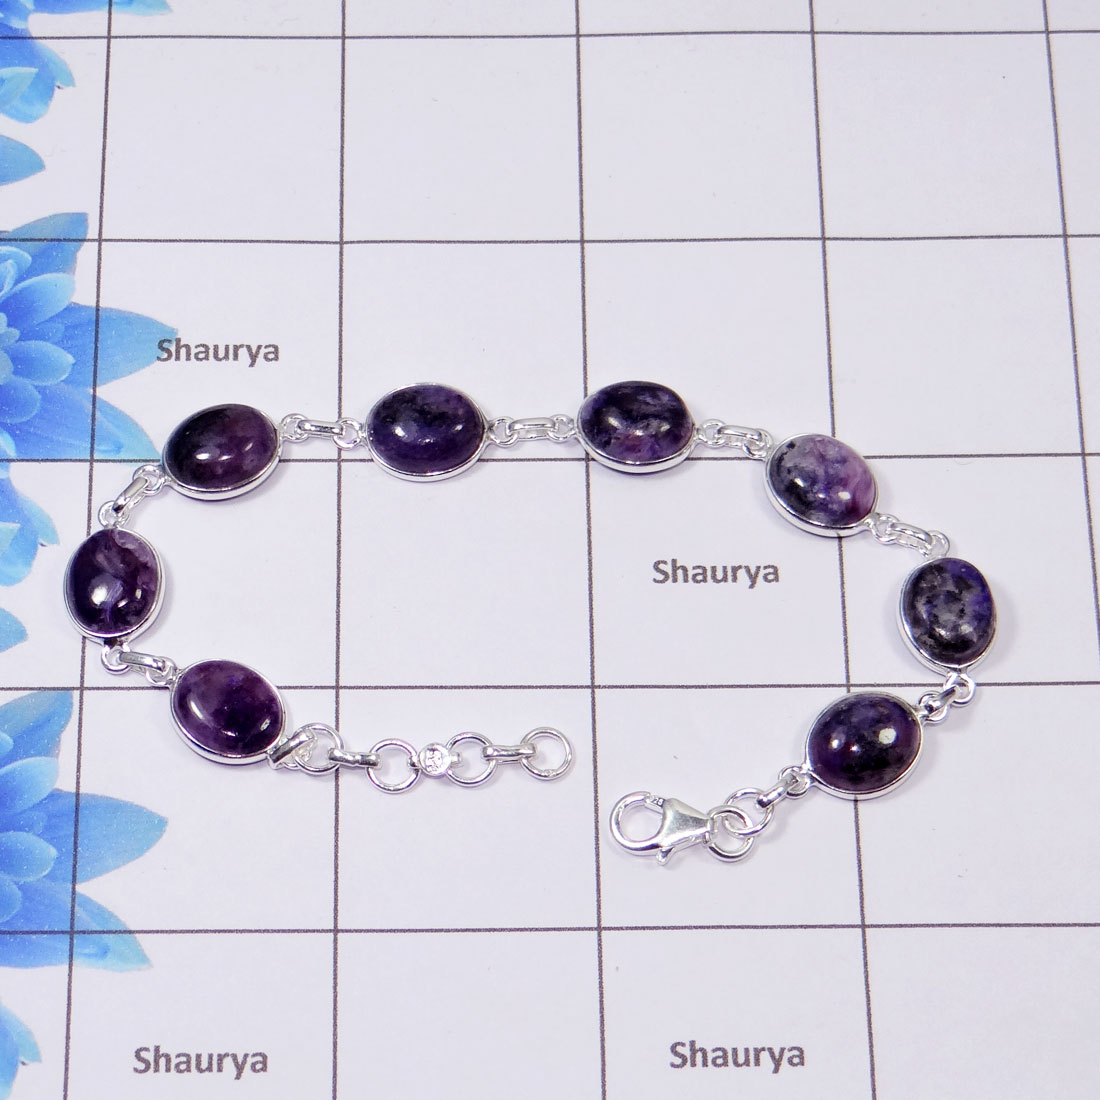 Charoite Bracelet F - SBB889-Natural Charoite Cab 925 Sterling Silver Classic Simple Bezel Set Wholesale Bracelet